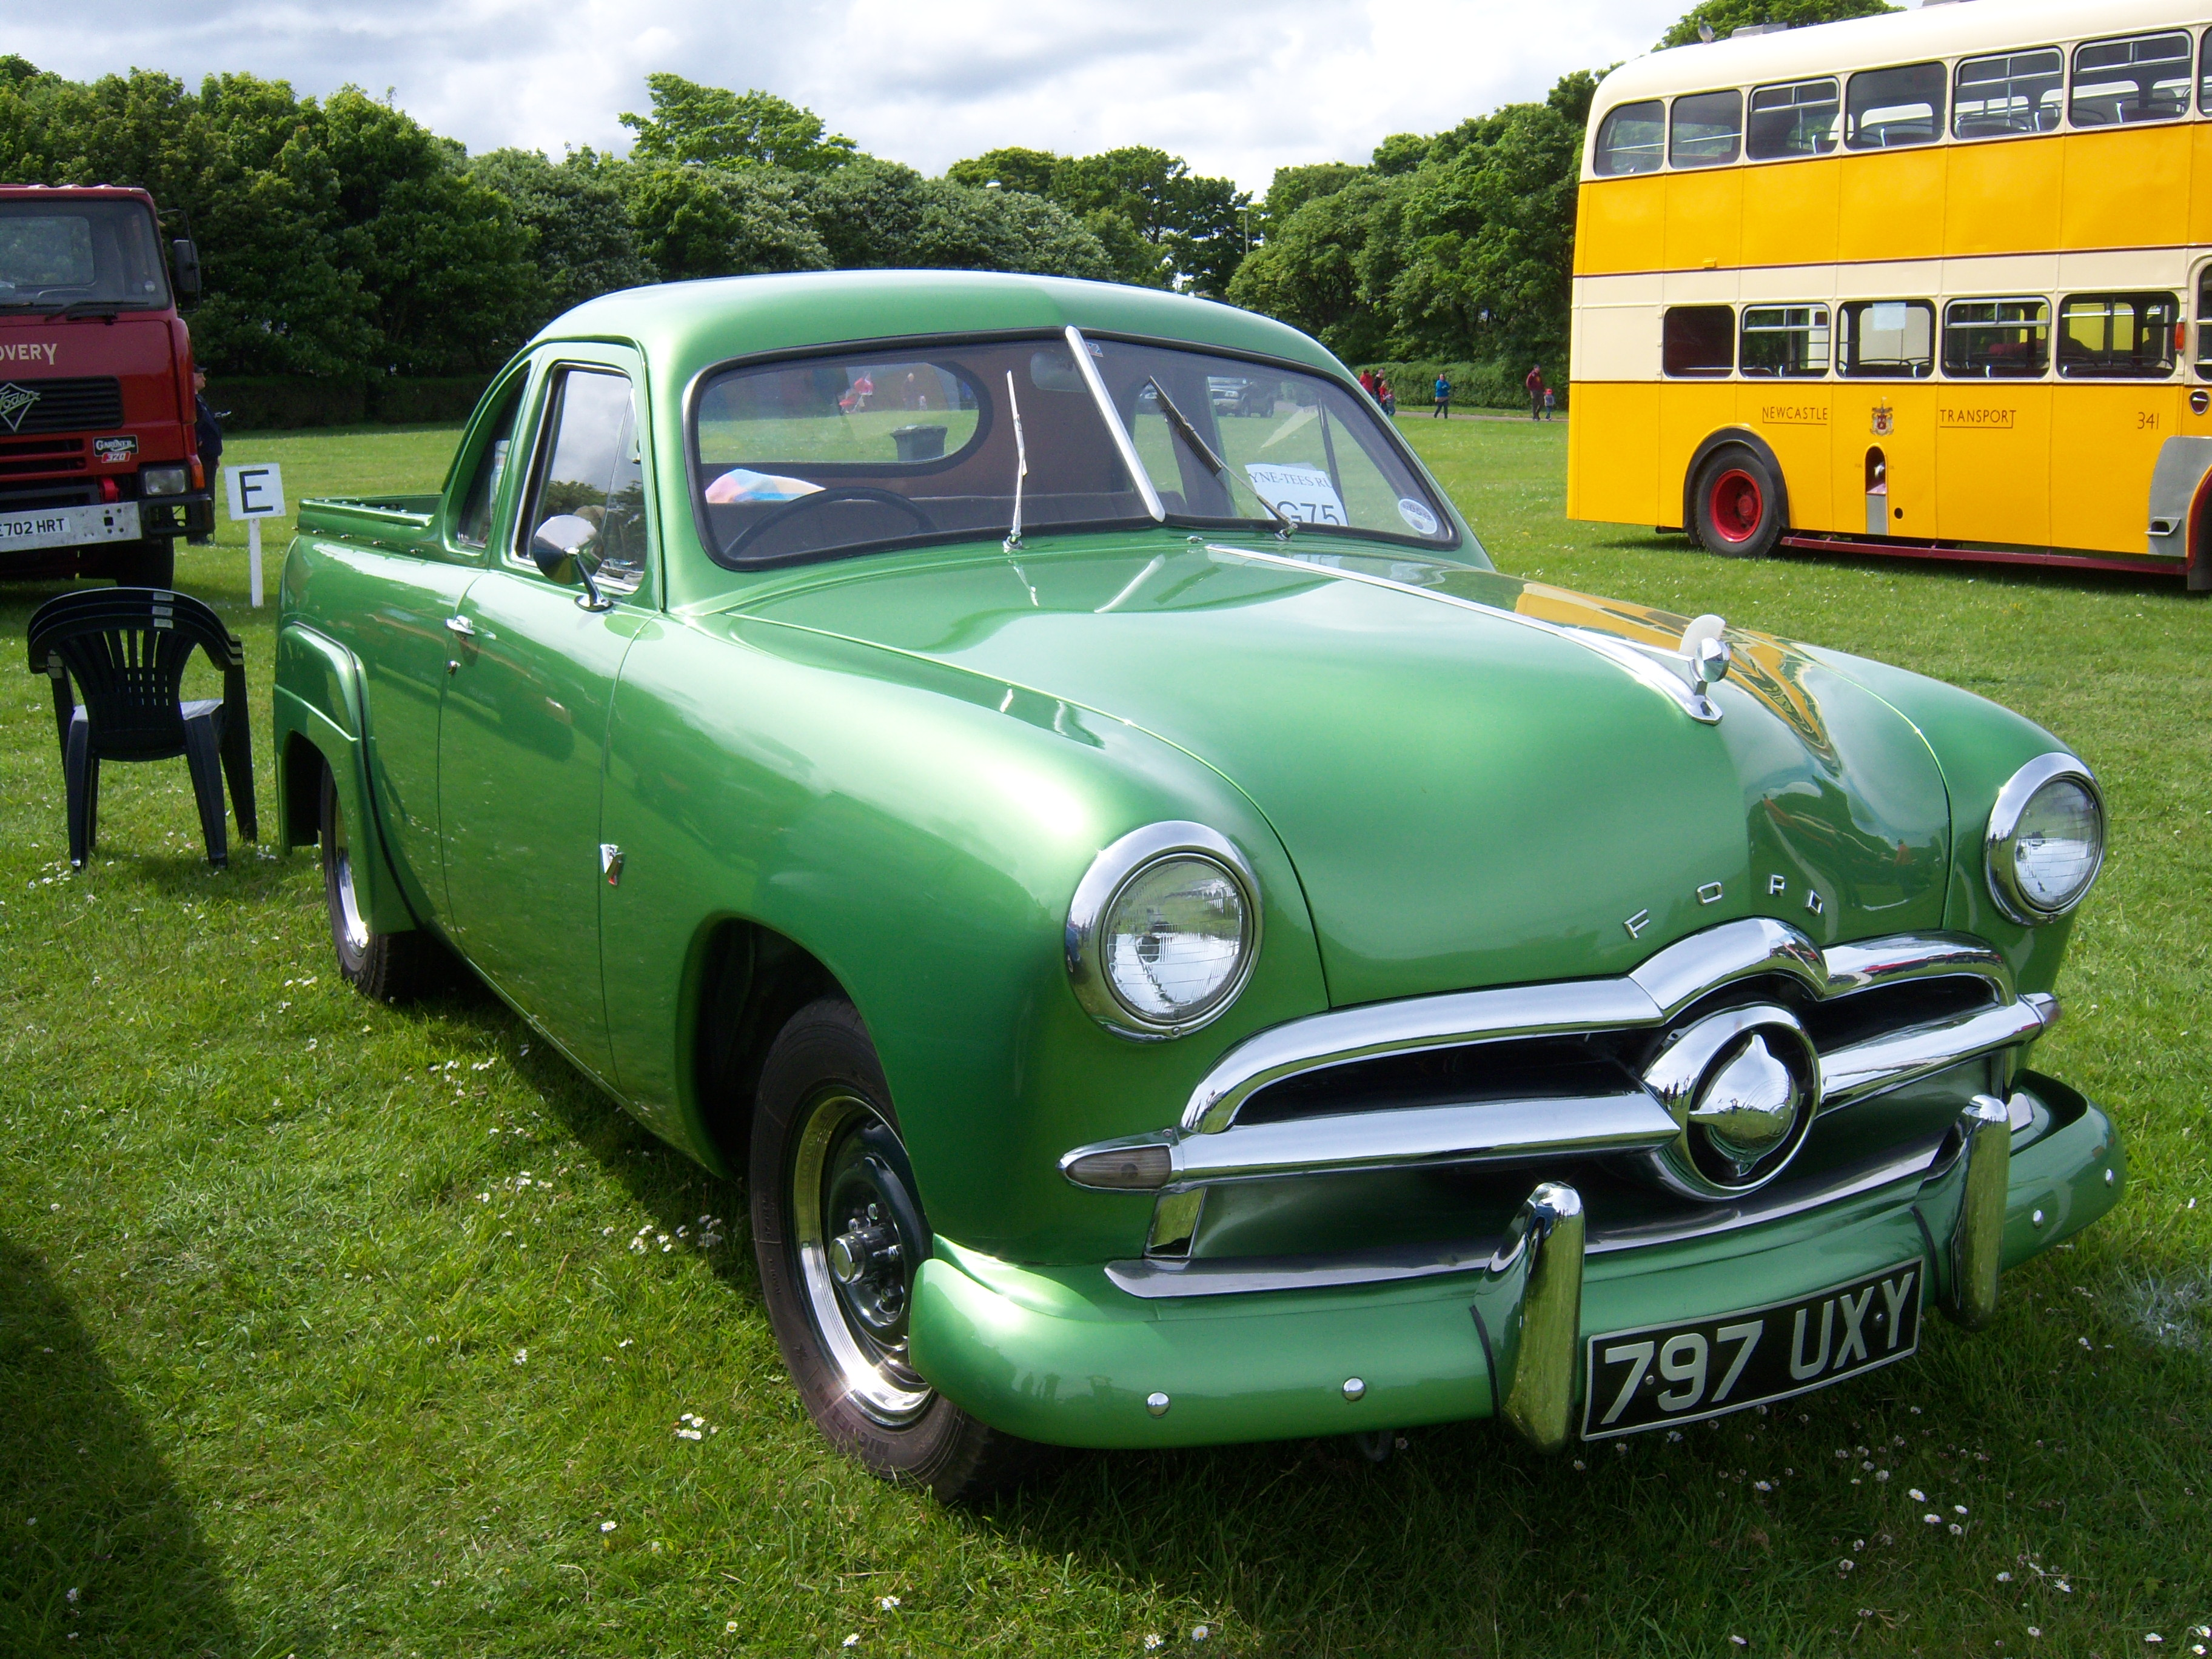 File 1949 Ford 8a 797 Uxy Coupe Utility 2012 Hcvs Tyne